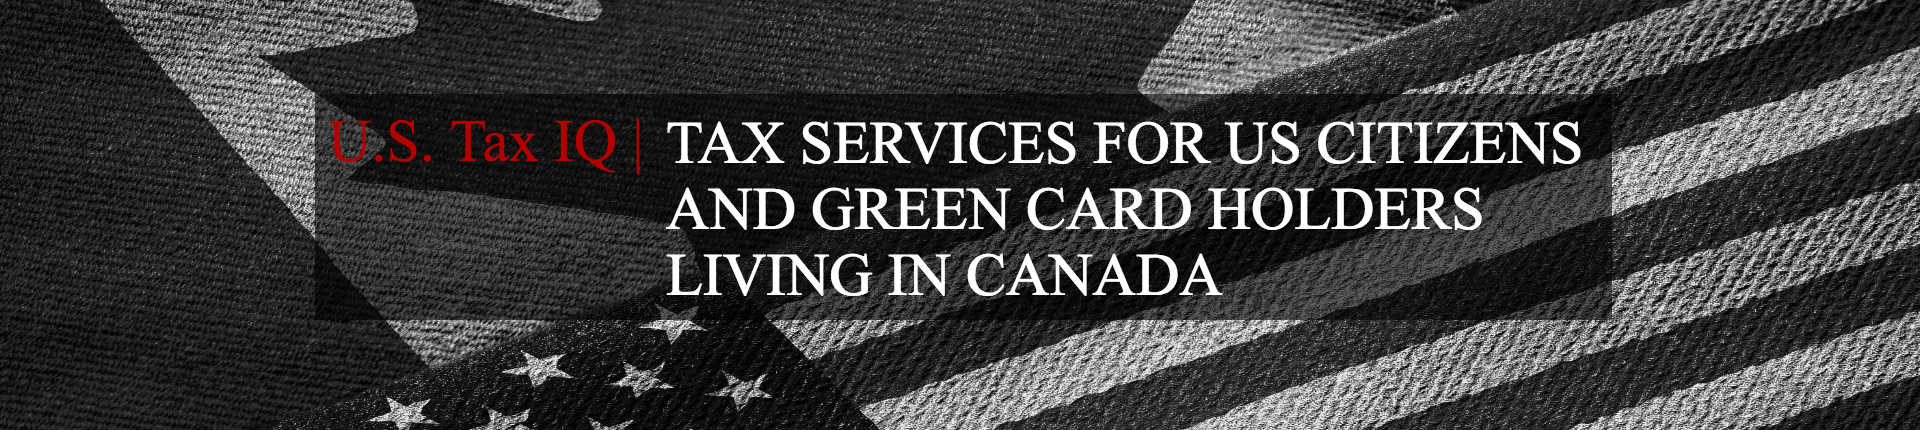 tax services us citizens canada